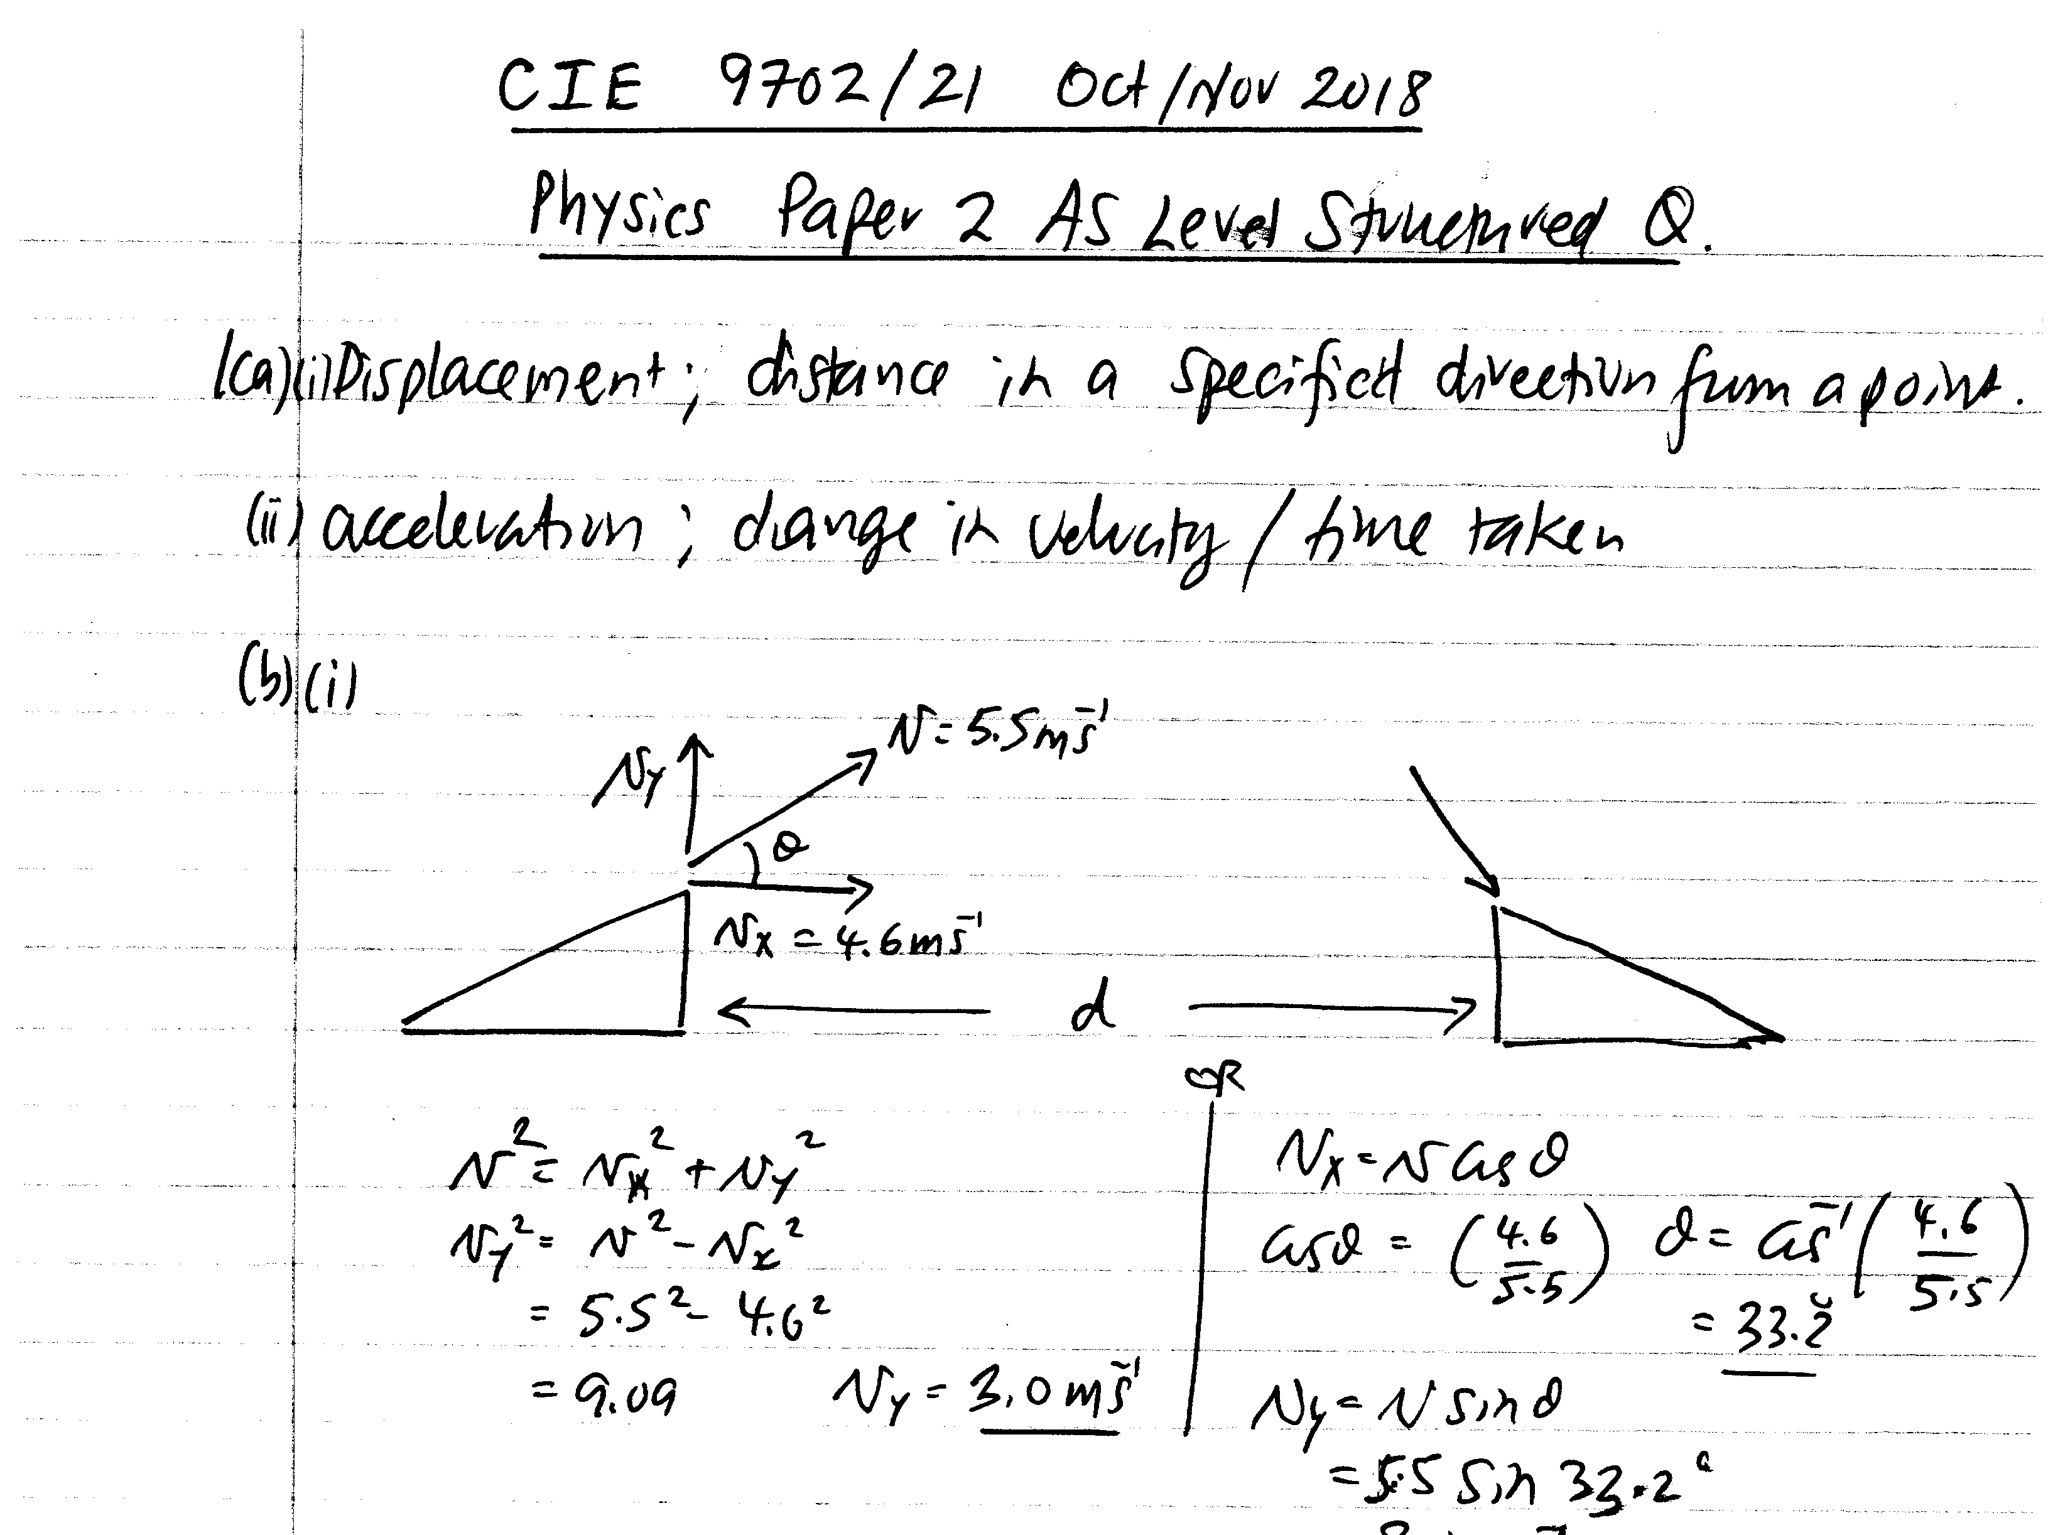 CIE A Level 9702/21 Oct/Nov 2018 paper 2 - Structured Questions Detailed Solutions